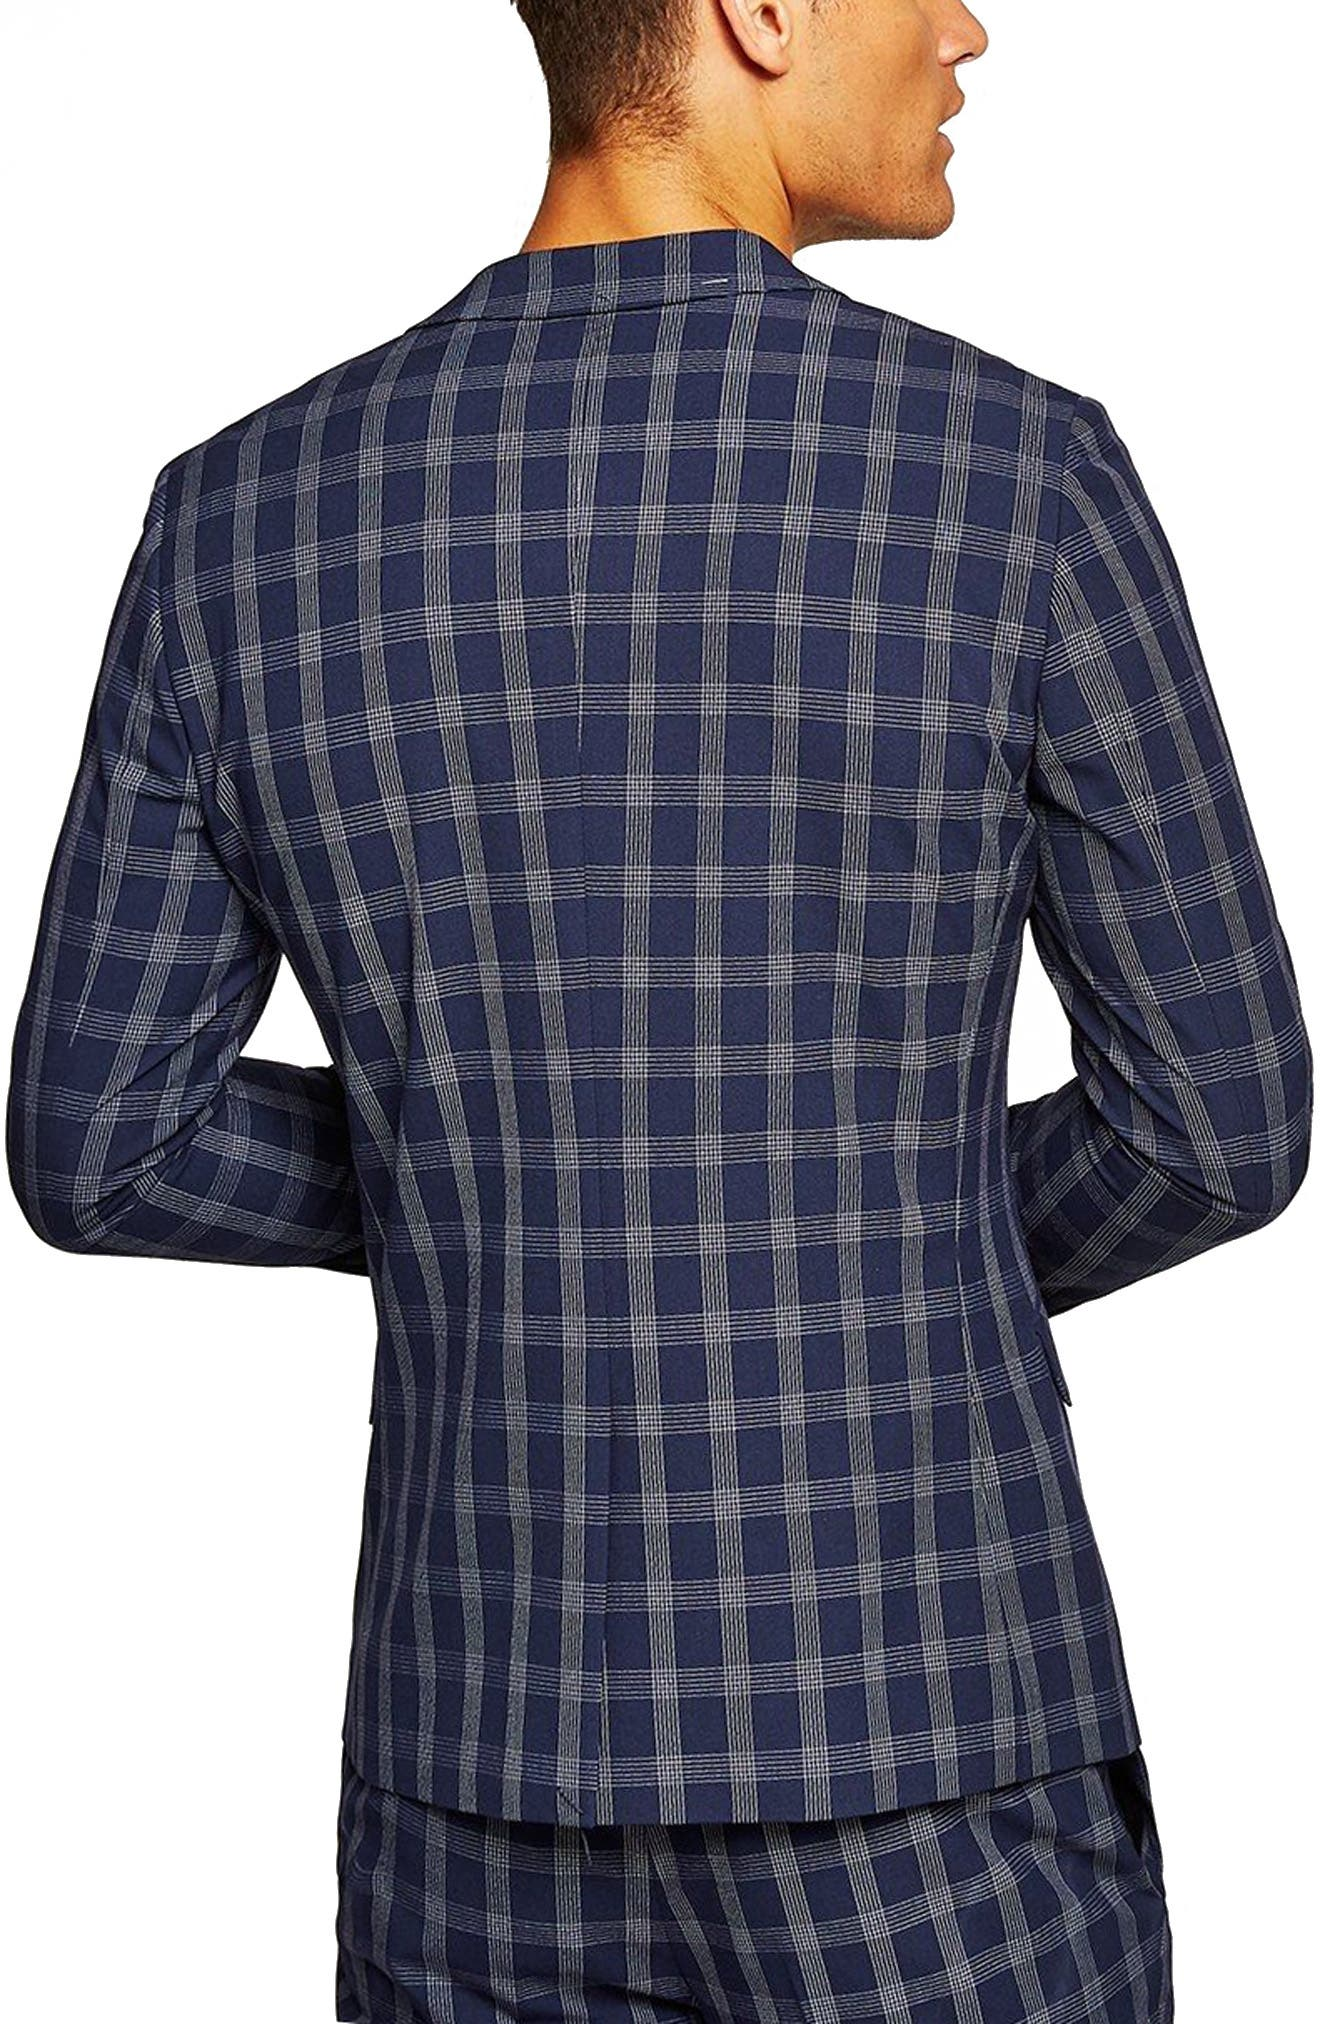 Muscle Fit Check Suit Jacket,                             Alternate thumbnail 2, color,                             NAVY BLUE MULTI